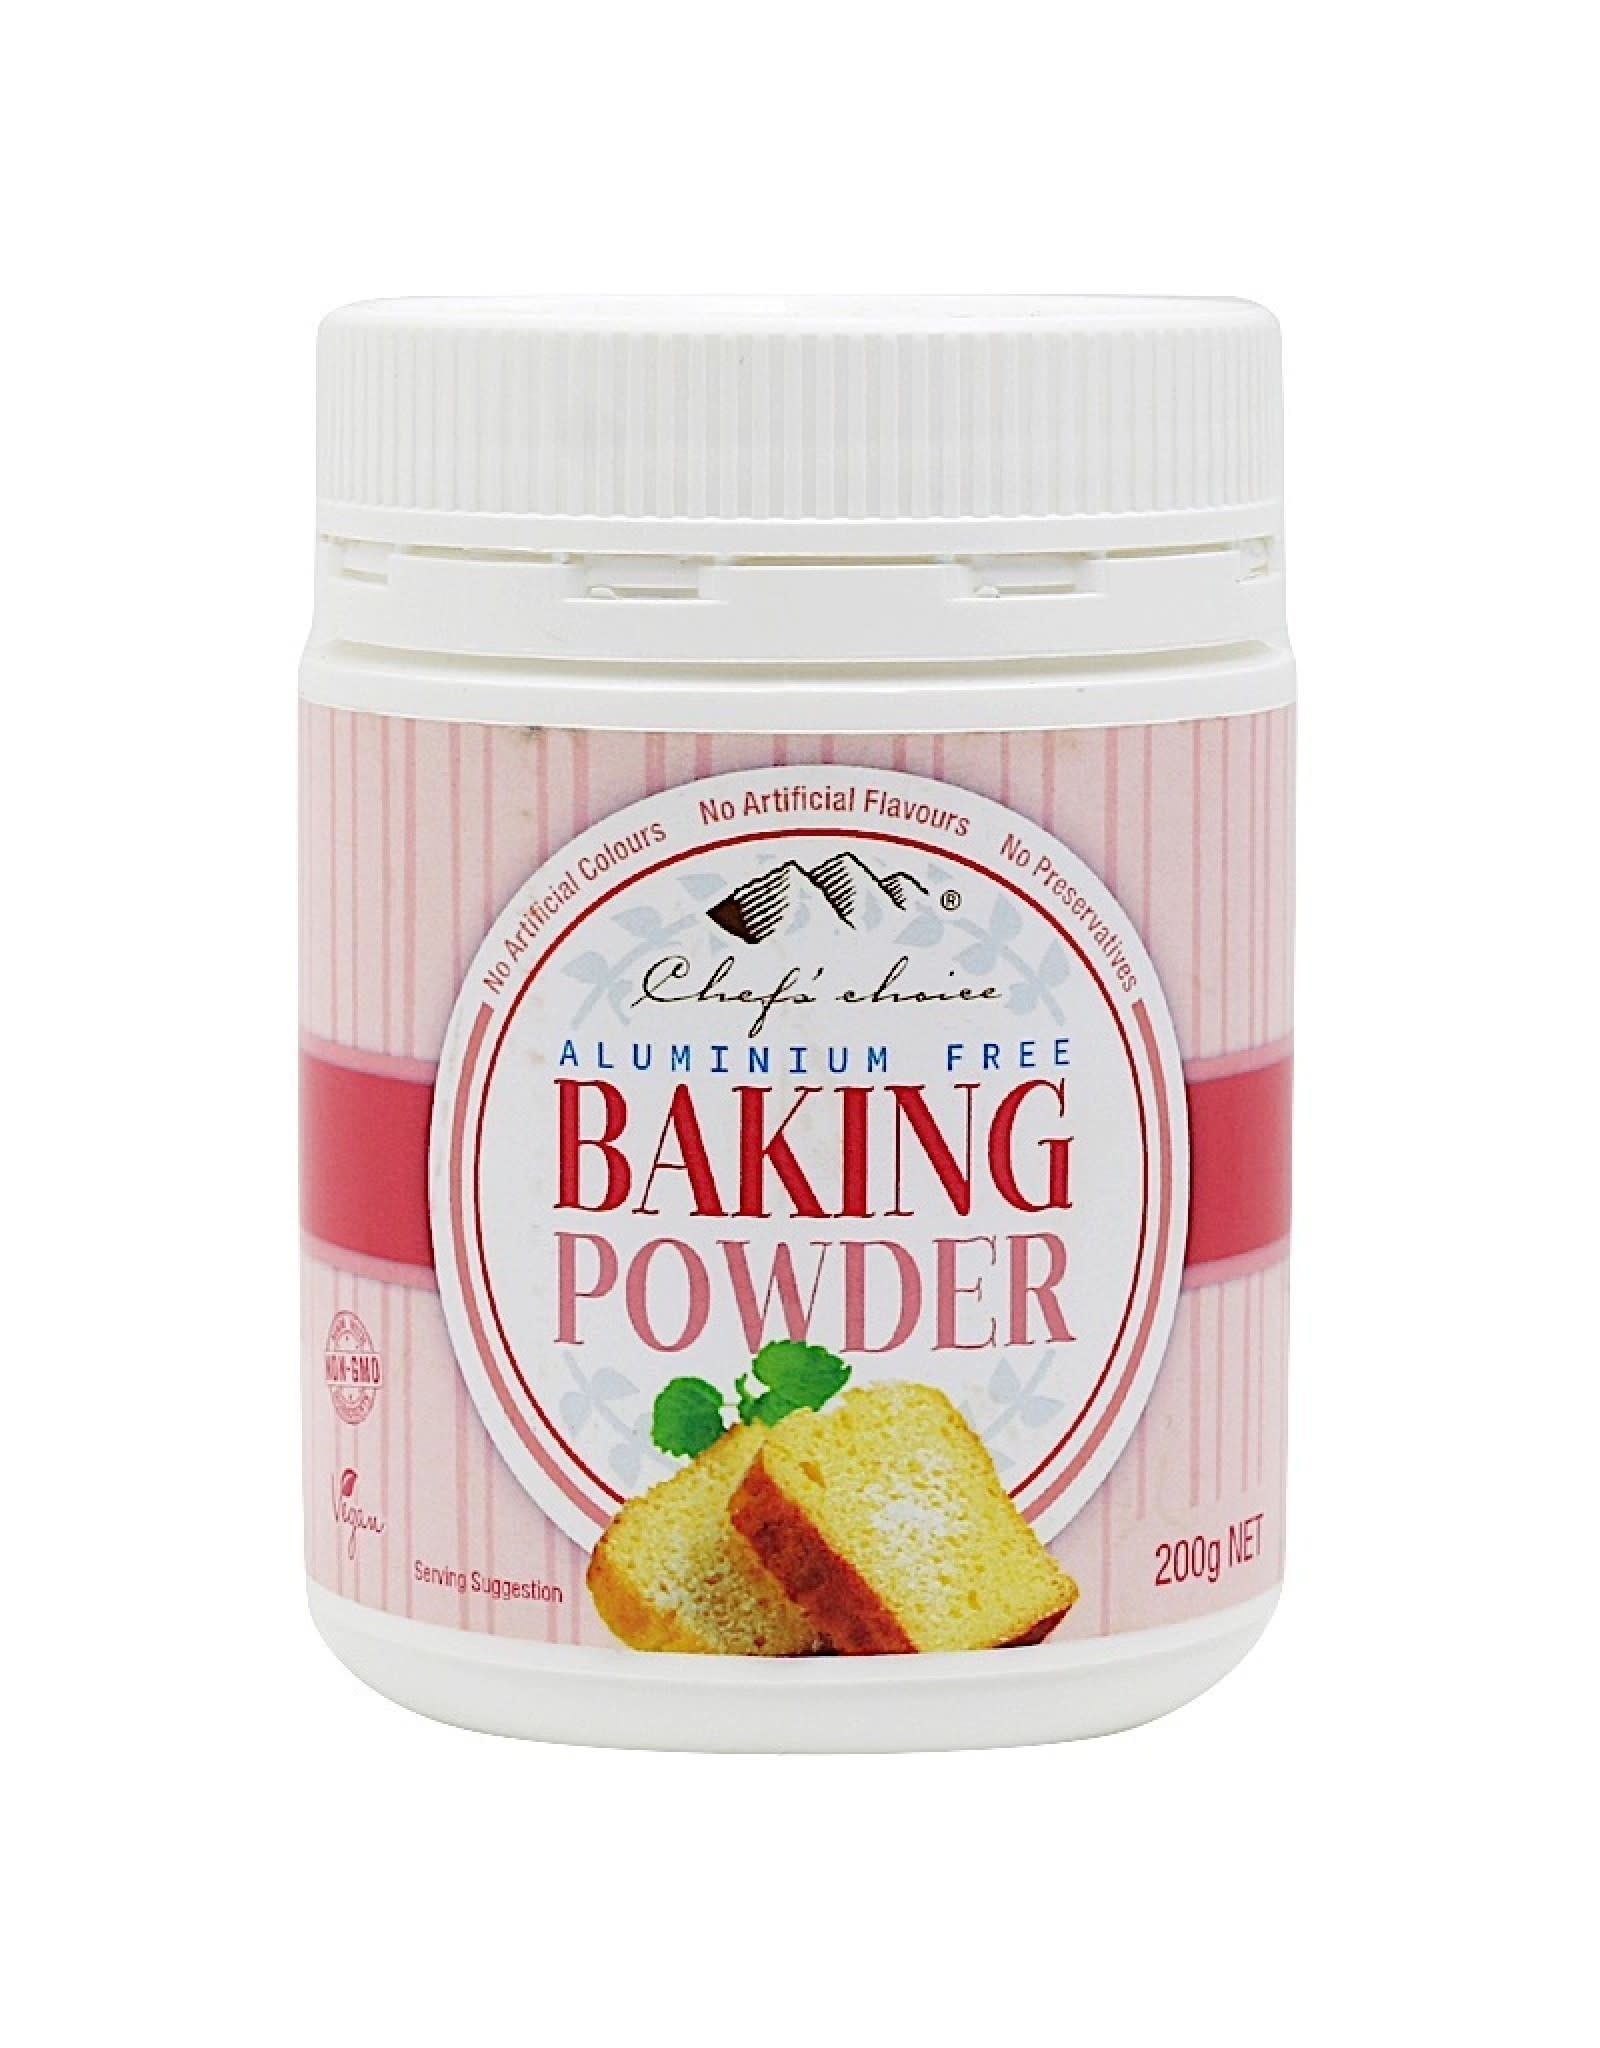 Chef's Choice Baking Powder - Aluminum Free - 200g